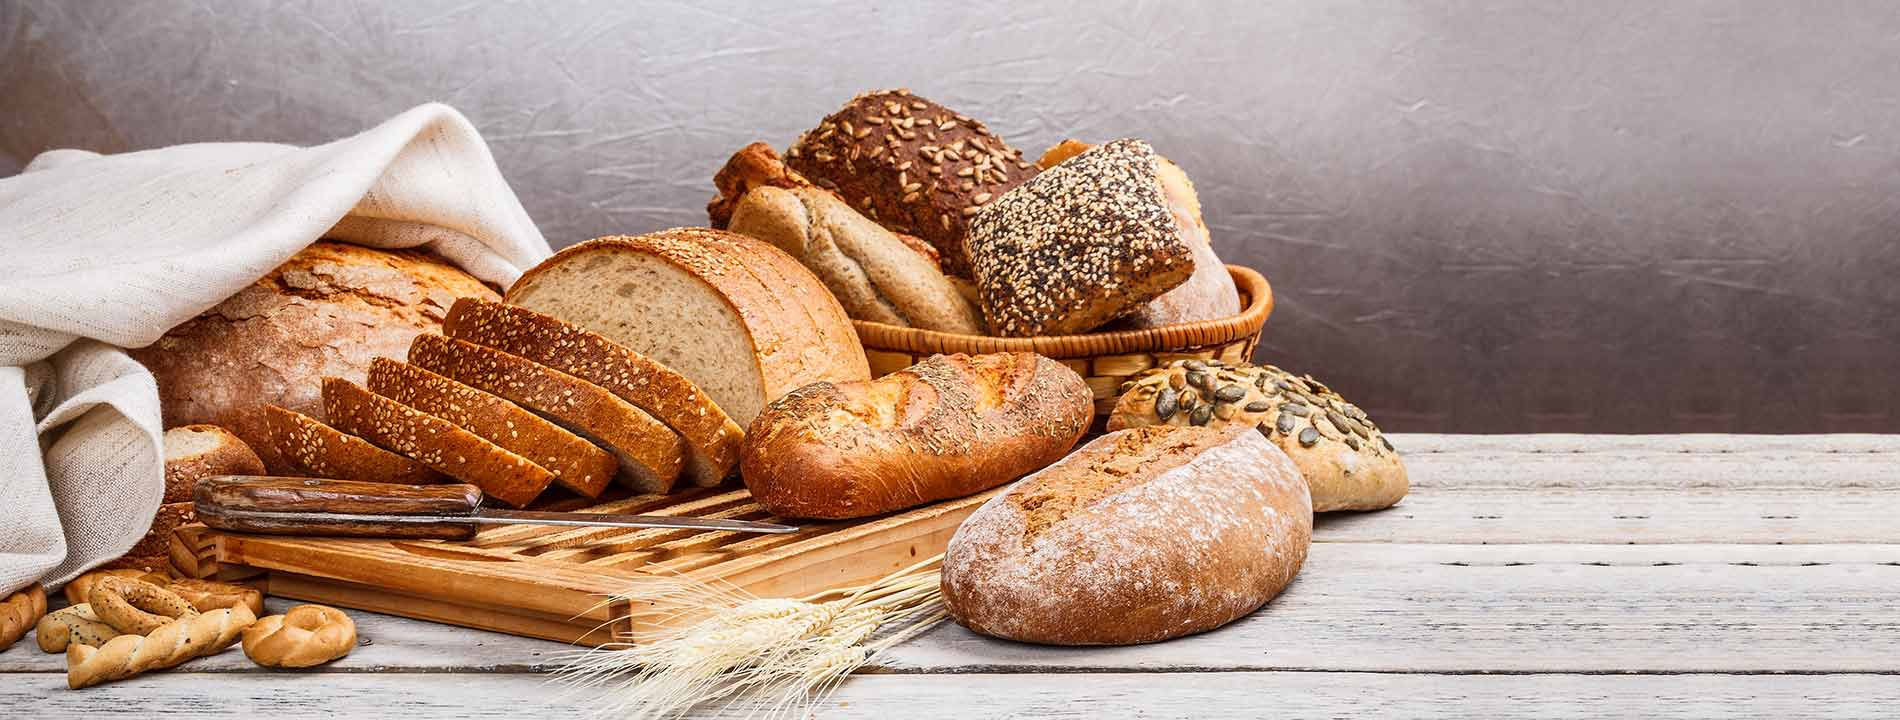 Bakery food testing lab in coimbatore